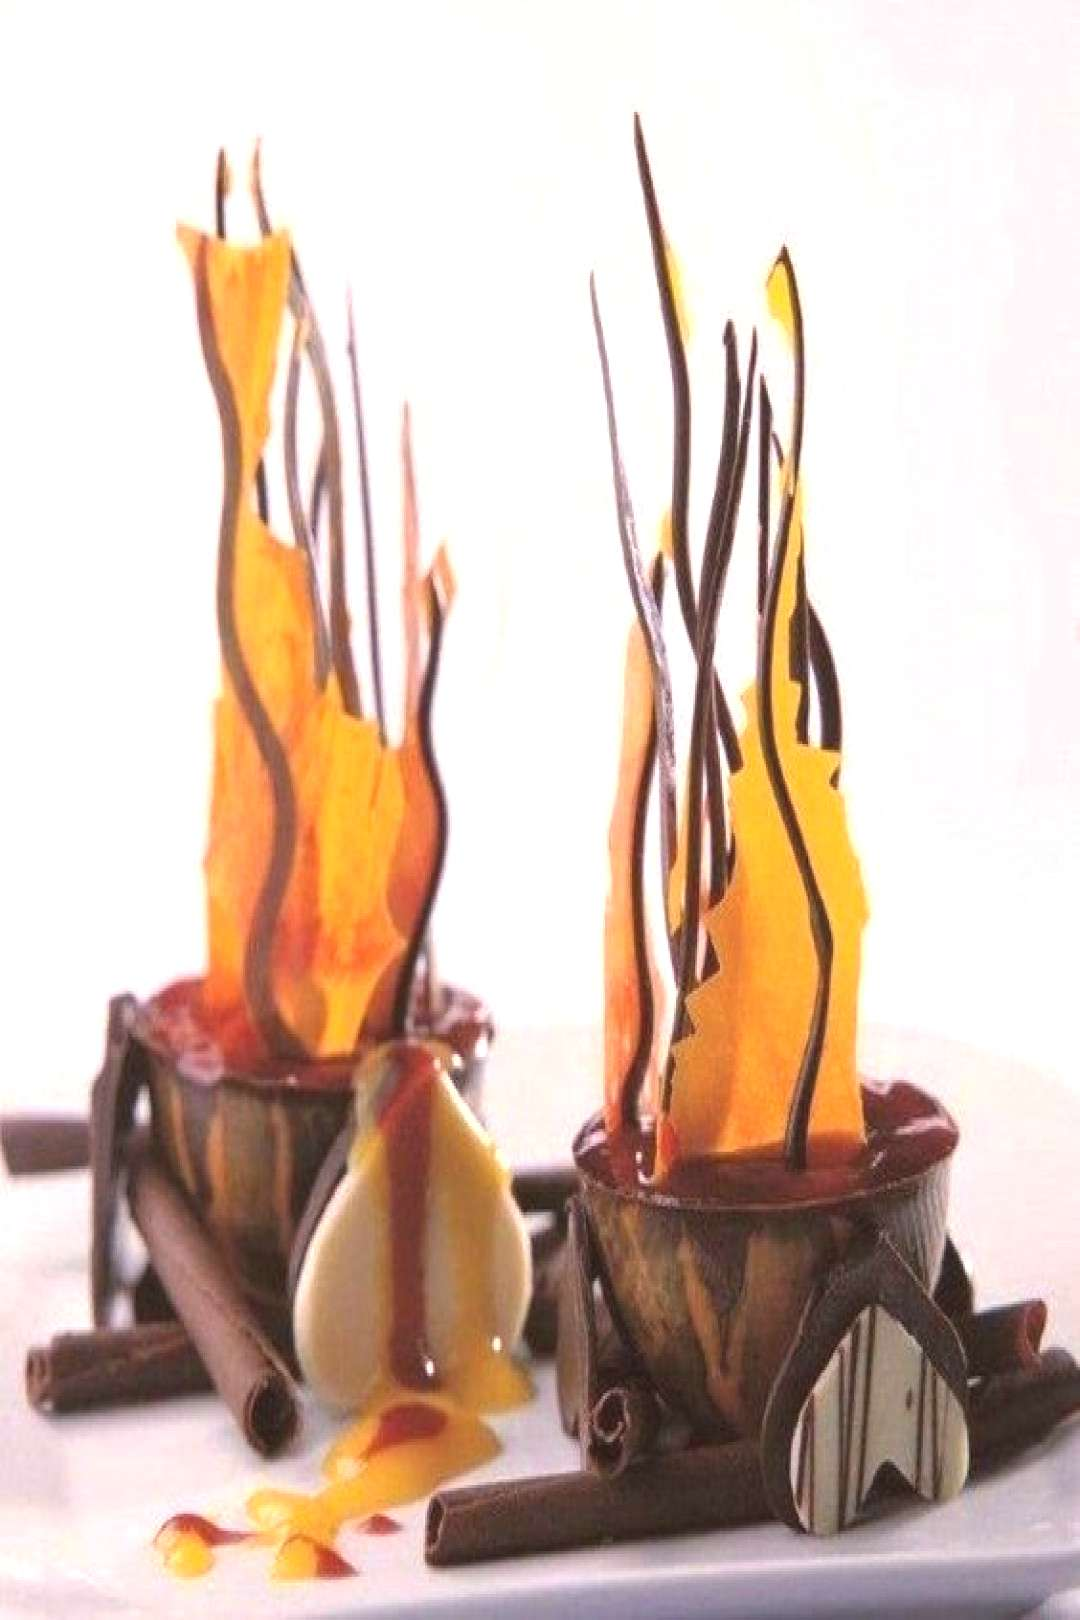 Beauty on plates -  Chocolate flames  -